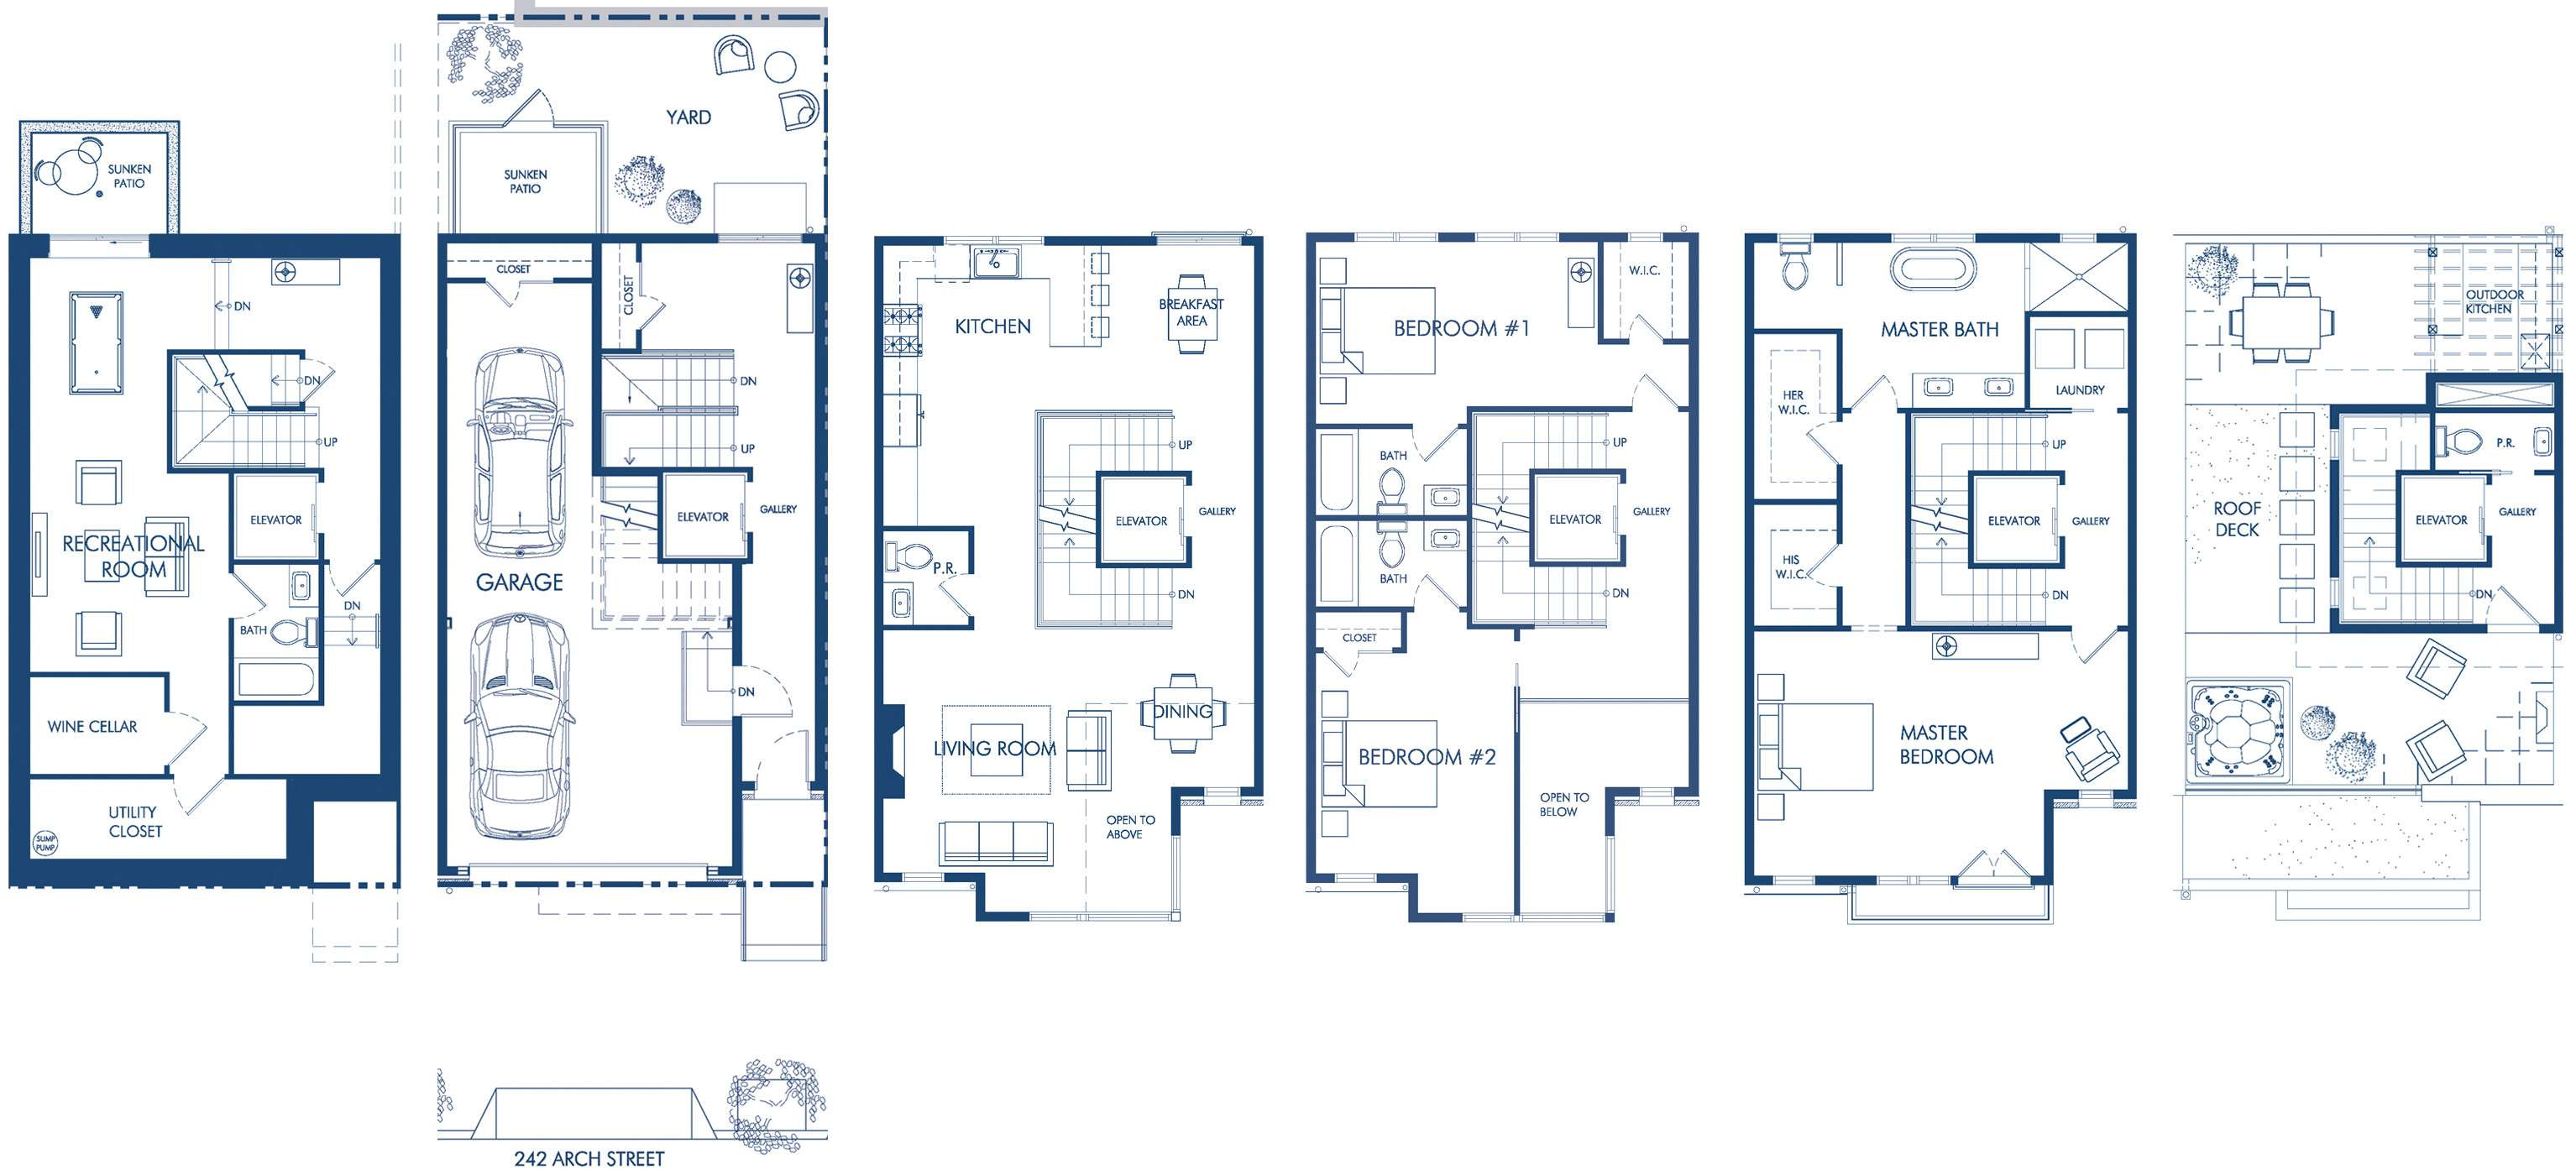 Townhome Floorplans House Plan